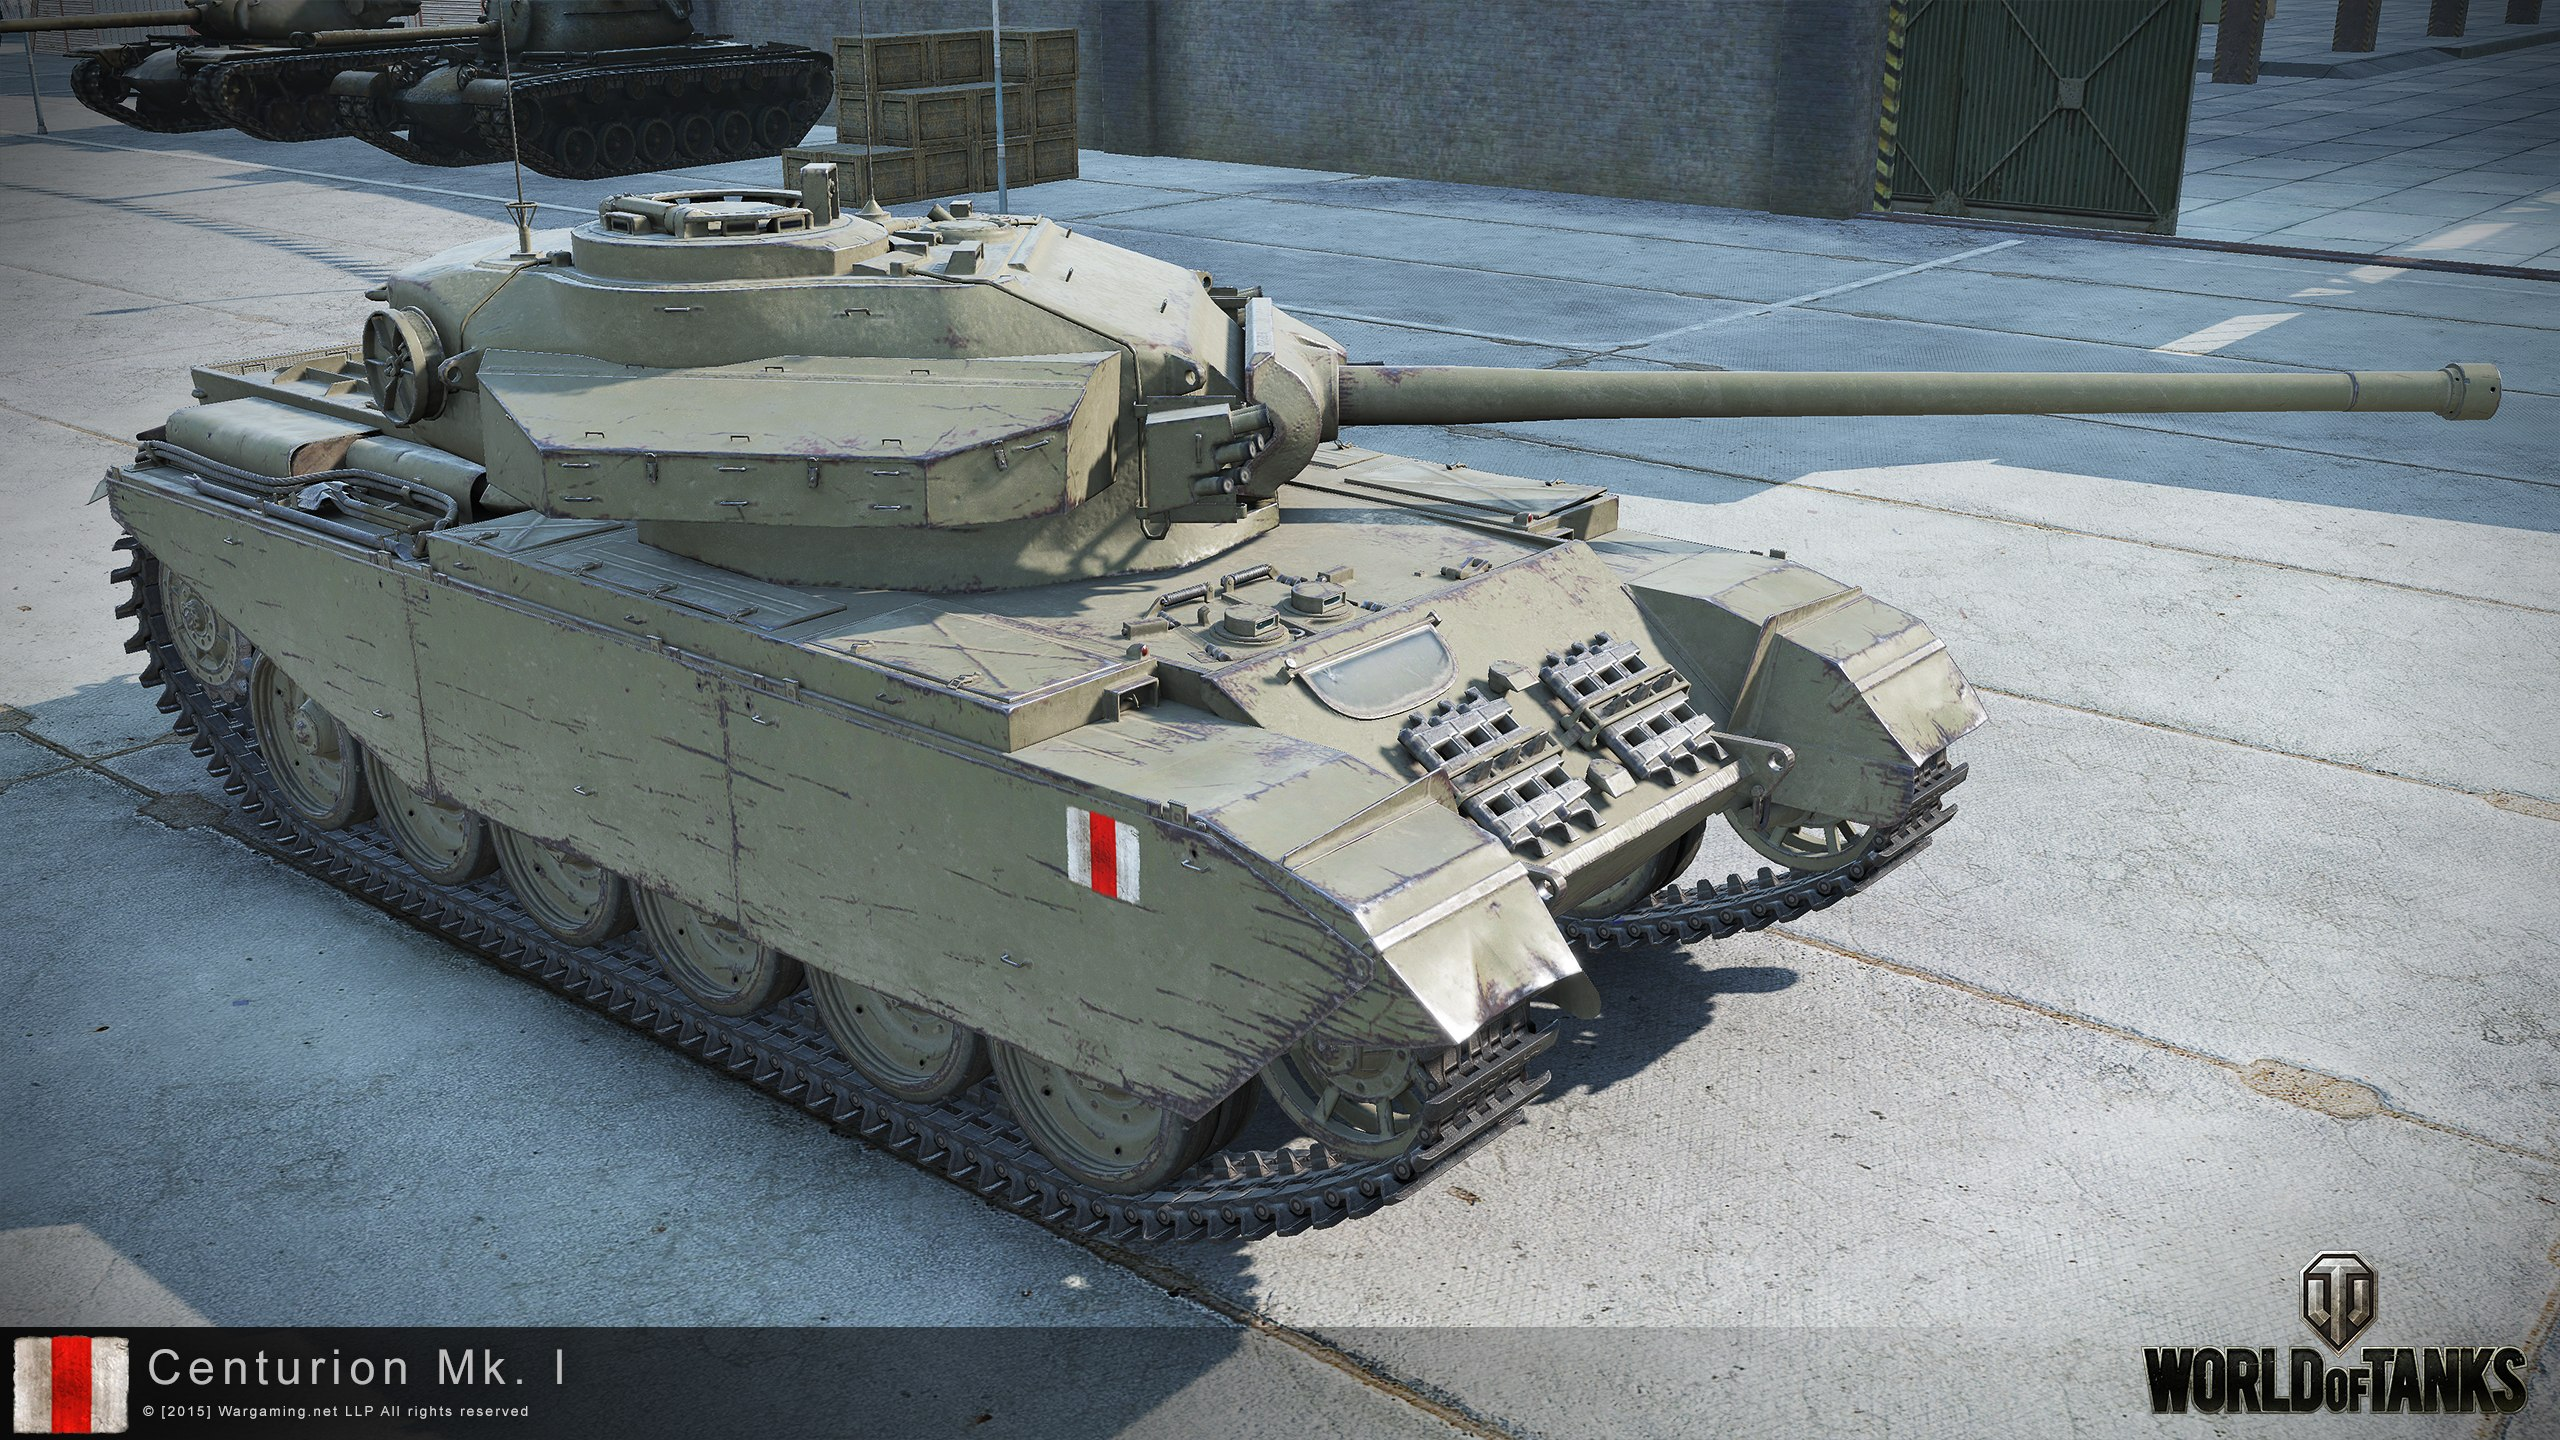 Mk Name Wallpaper Hd Centurion Mk I Hd Renders The Armored Patrol